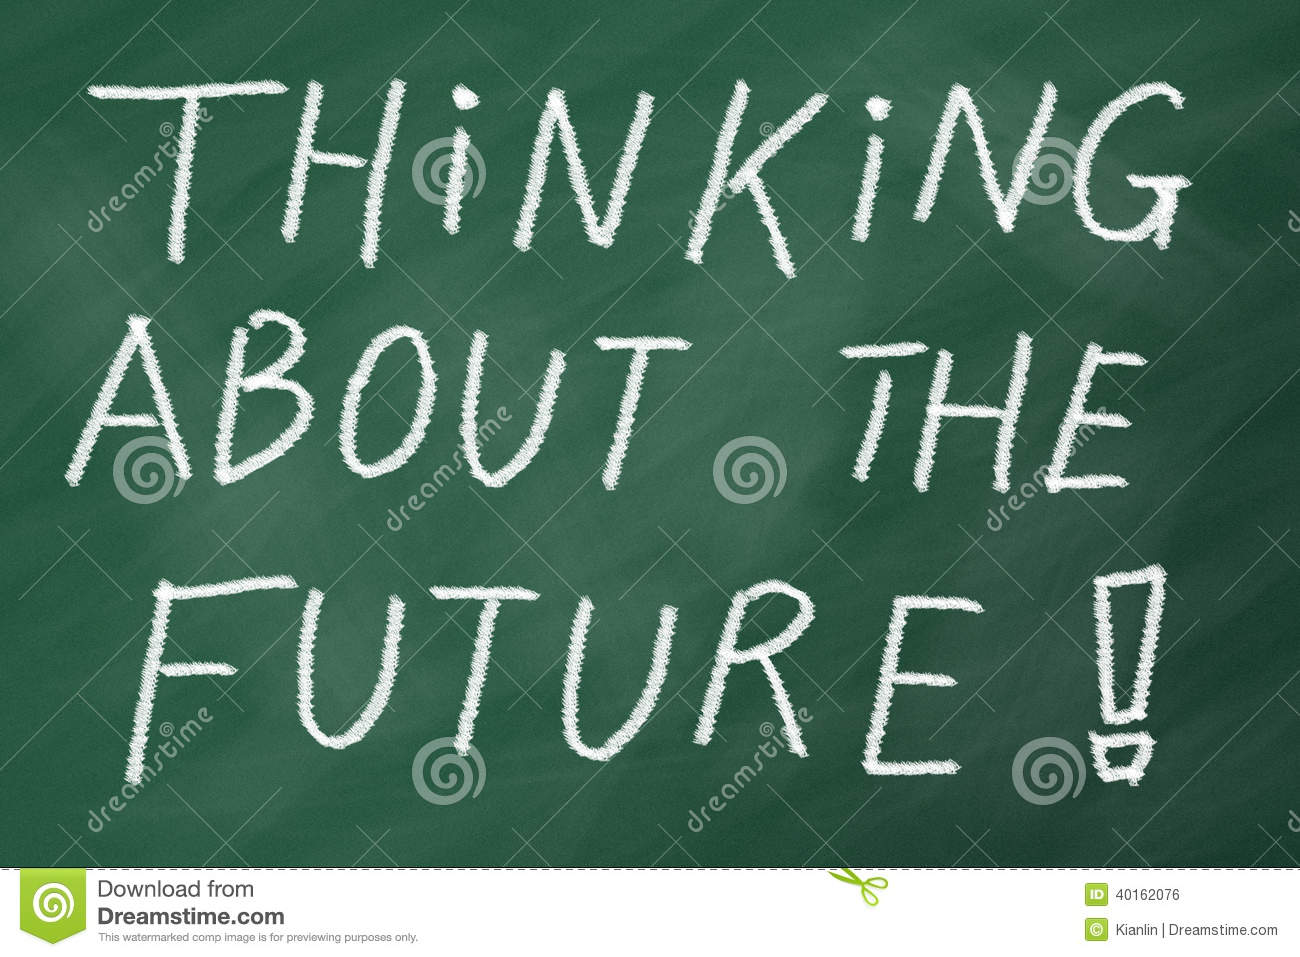 Start thinking about the future, goals in life and career.